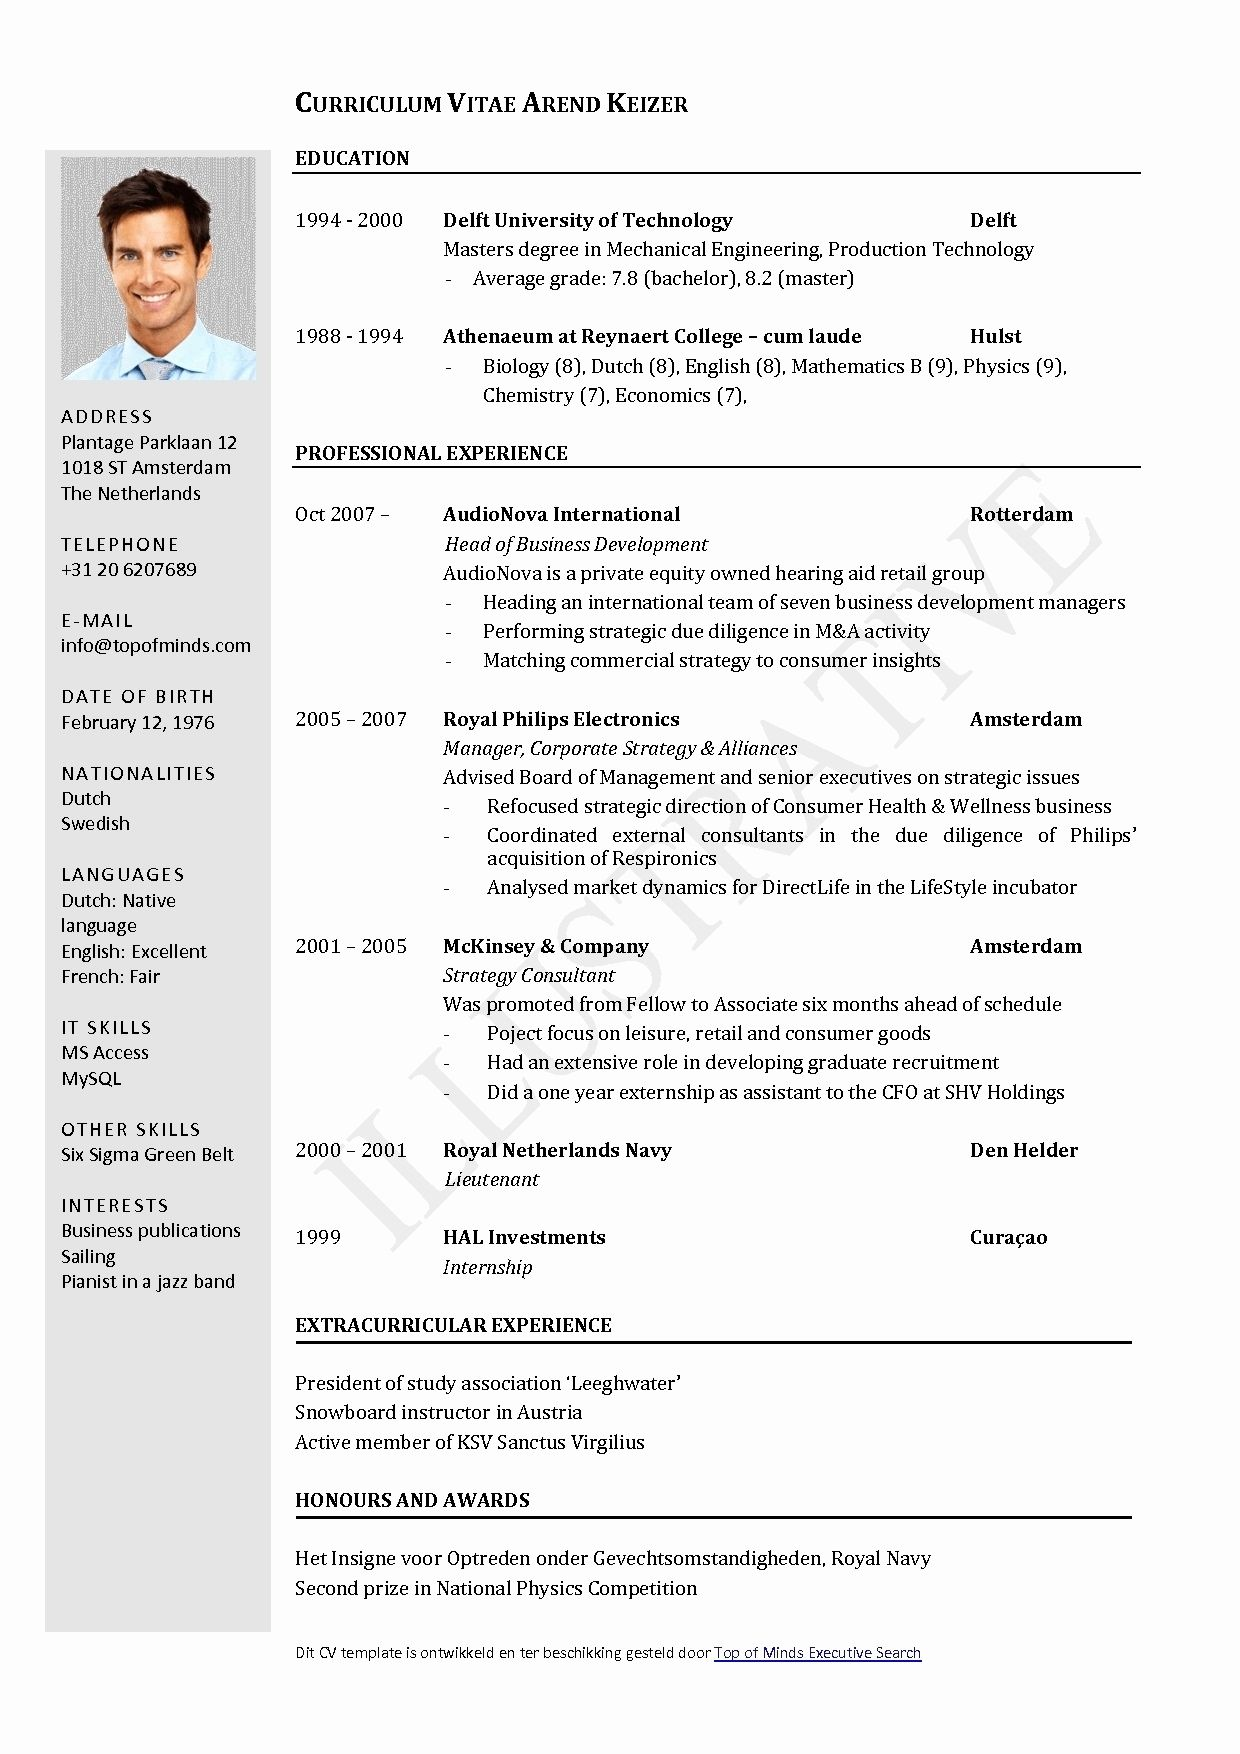 Cv Template Libreoffice Cvtemplate